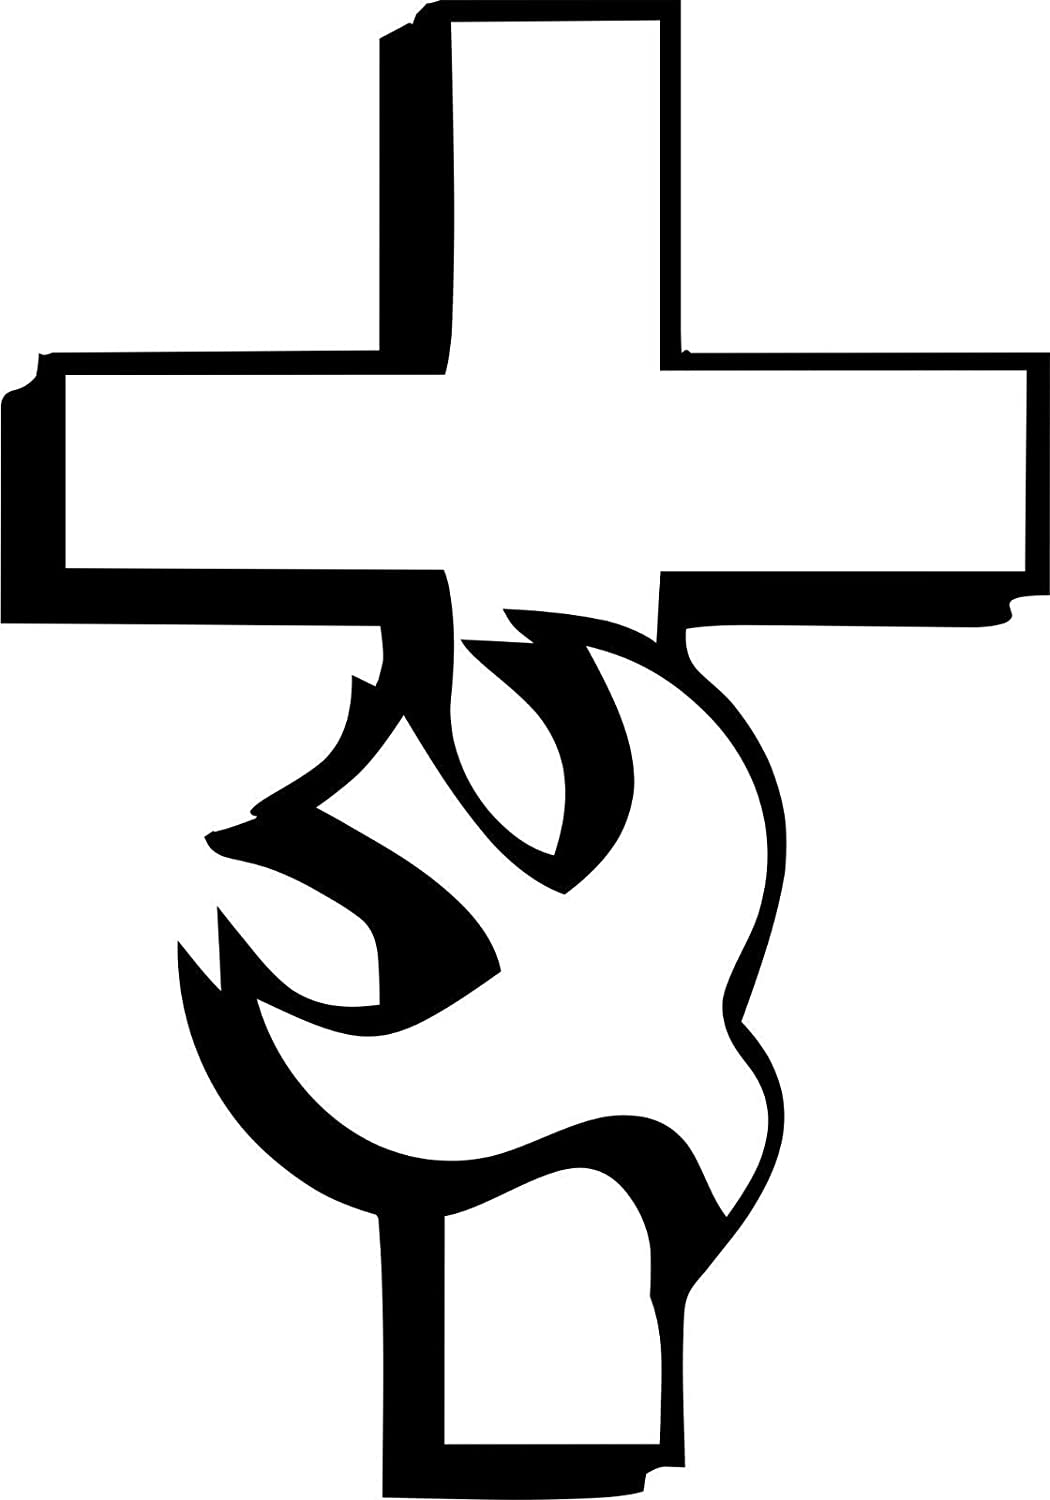 Evan Decals Magnet Religious Christian Cross with Dove Window Decal Vinyl Magnetic Sticker 6""